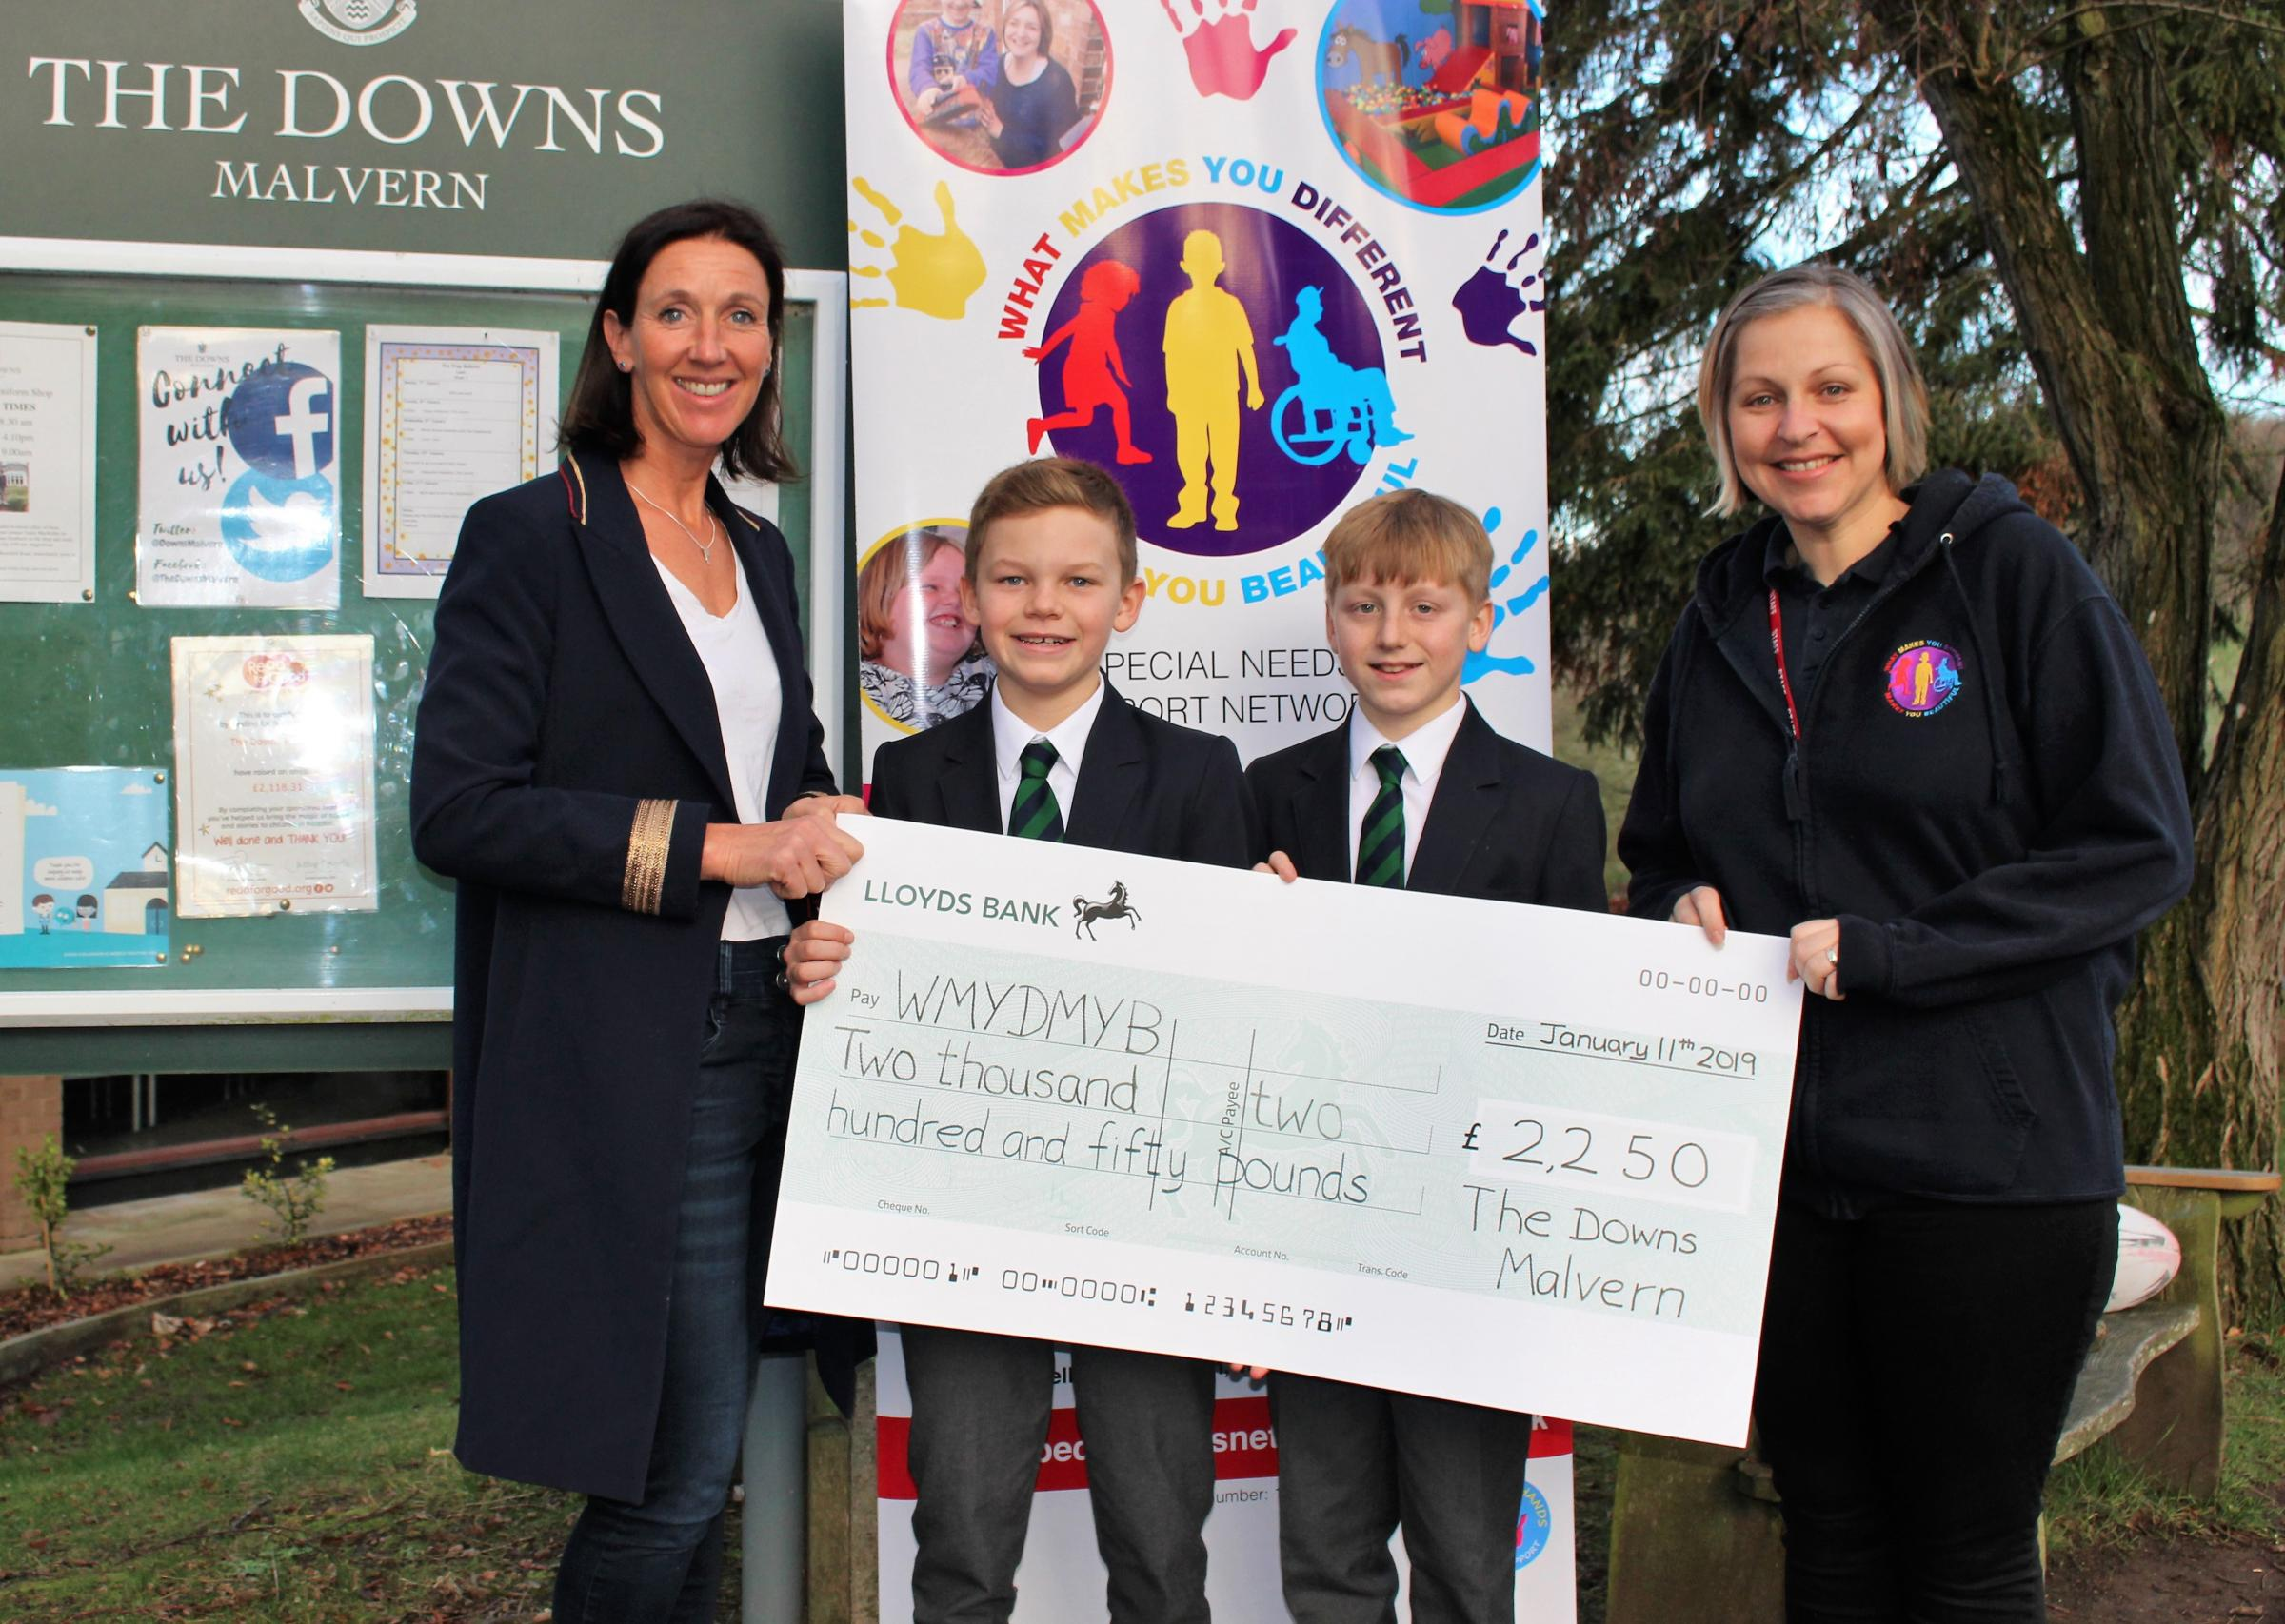 The Downs School presents a cheque to What Makes You Different Makes You Beautiful